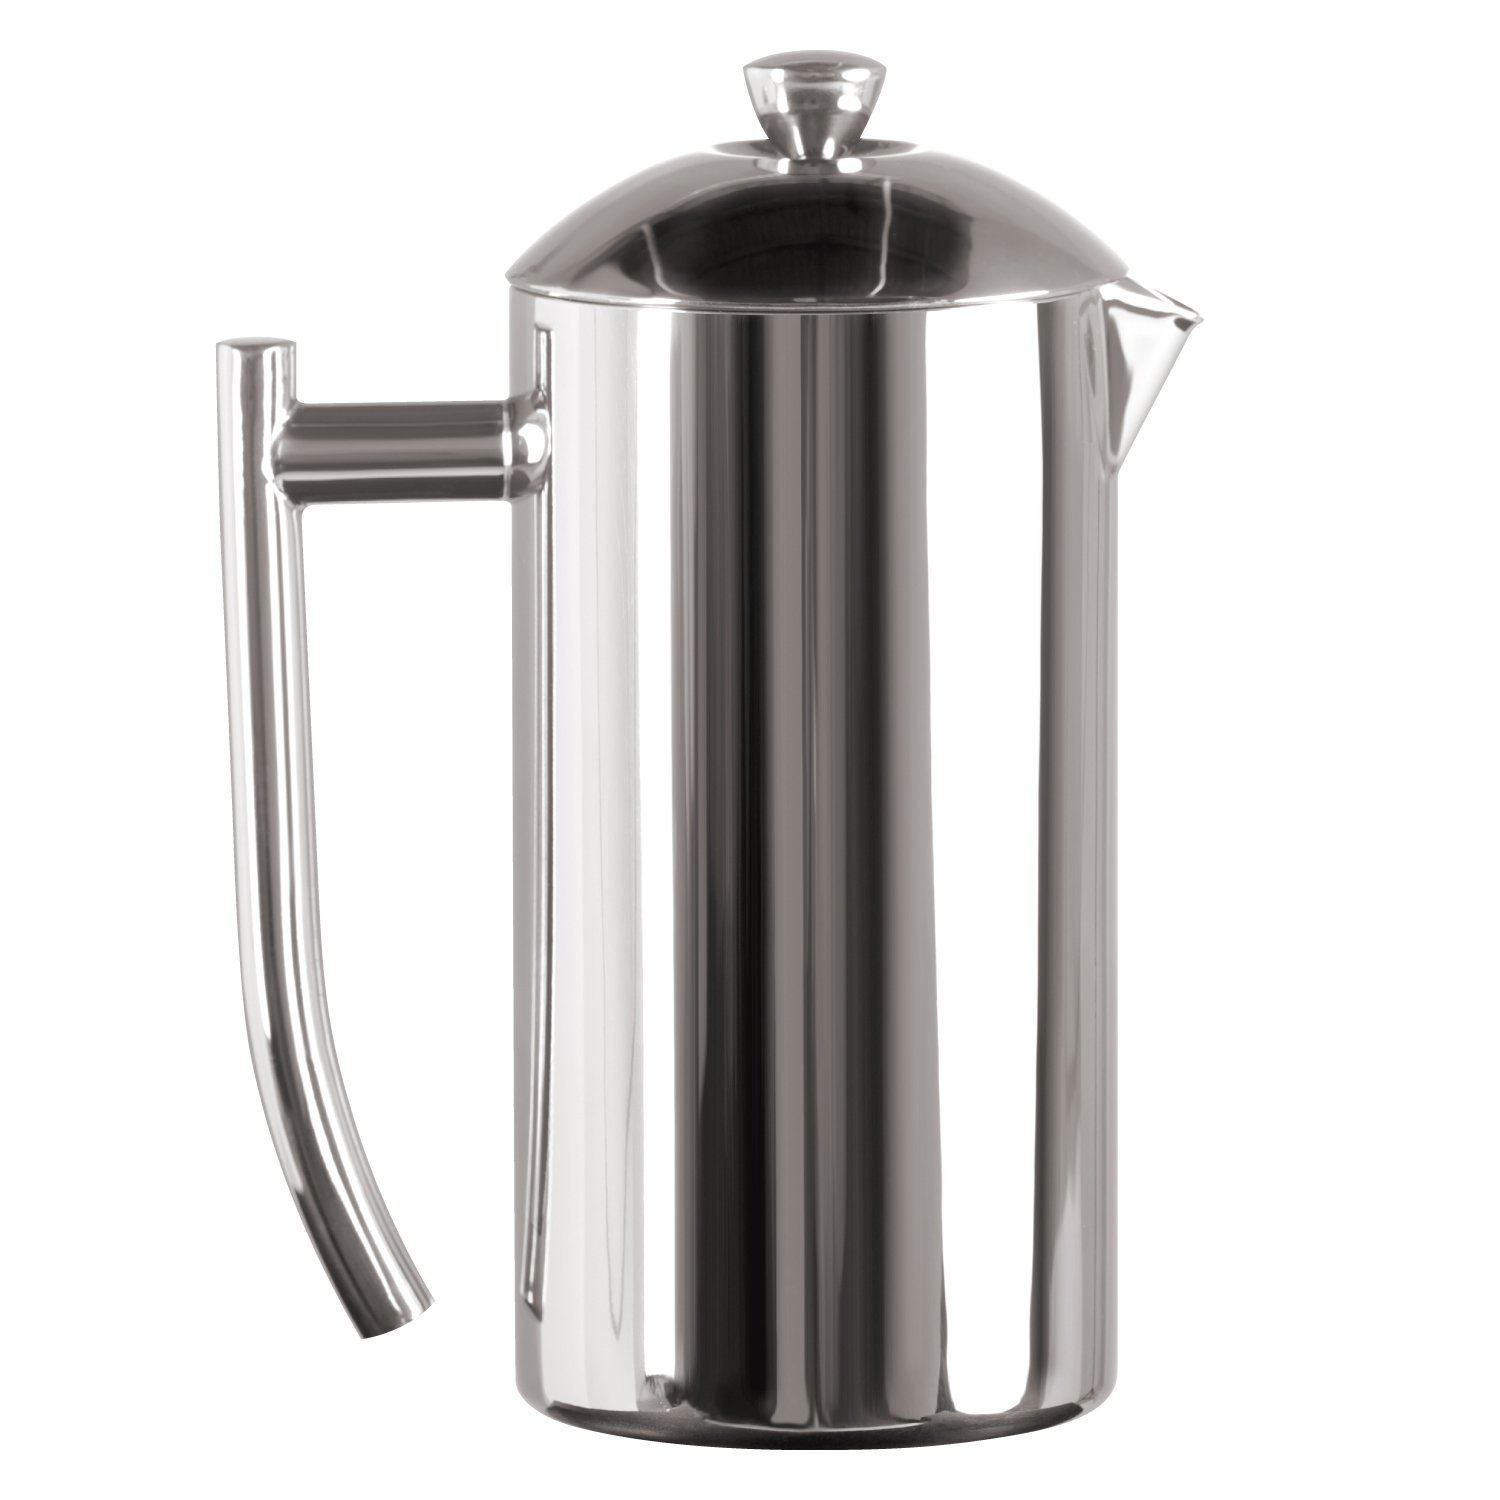 Best French Press Reviews: Making Coffee with Style 16